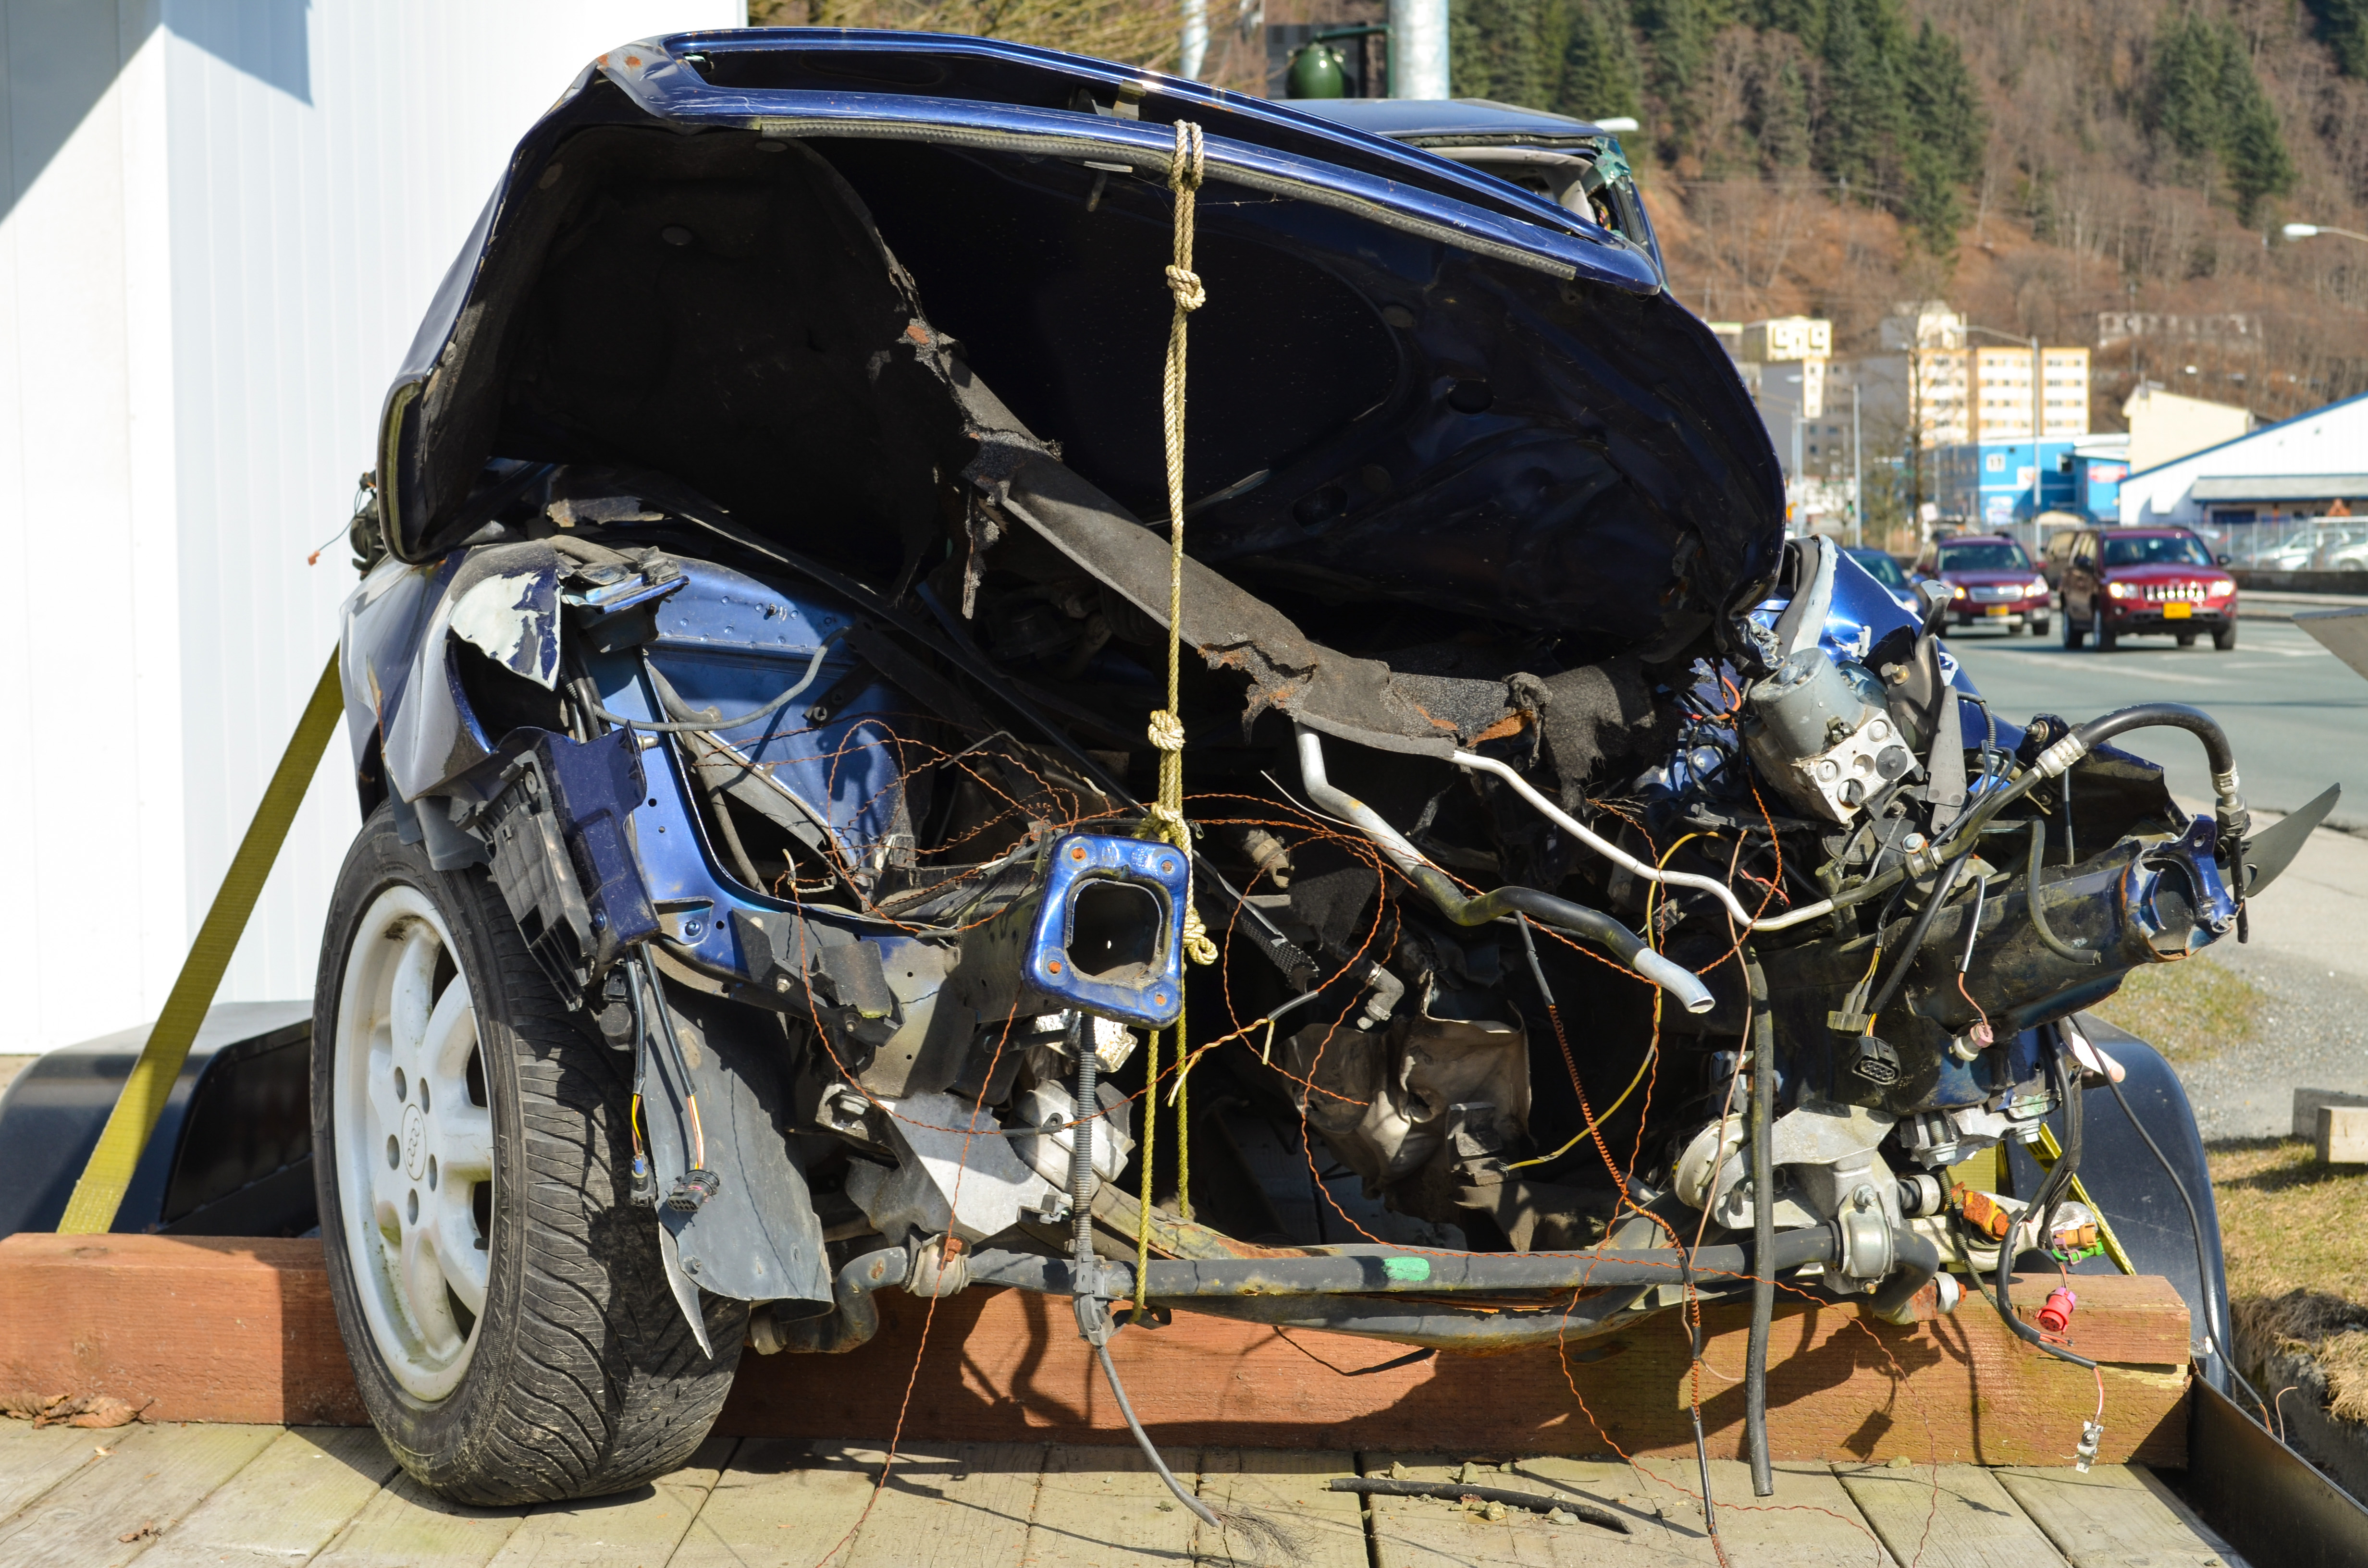 The 1999 Audi was driven by Tyler Emerson in the drunk driving accident that killed Taylor White. (Sarah Yu/ KTOO)